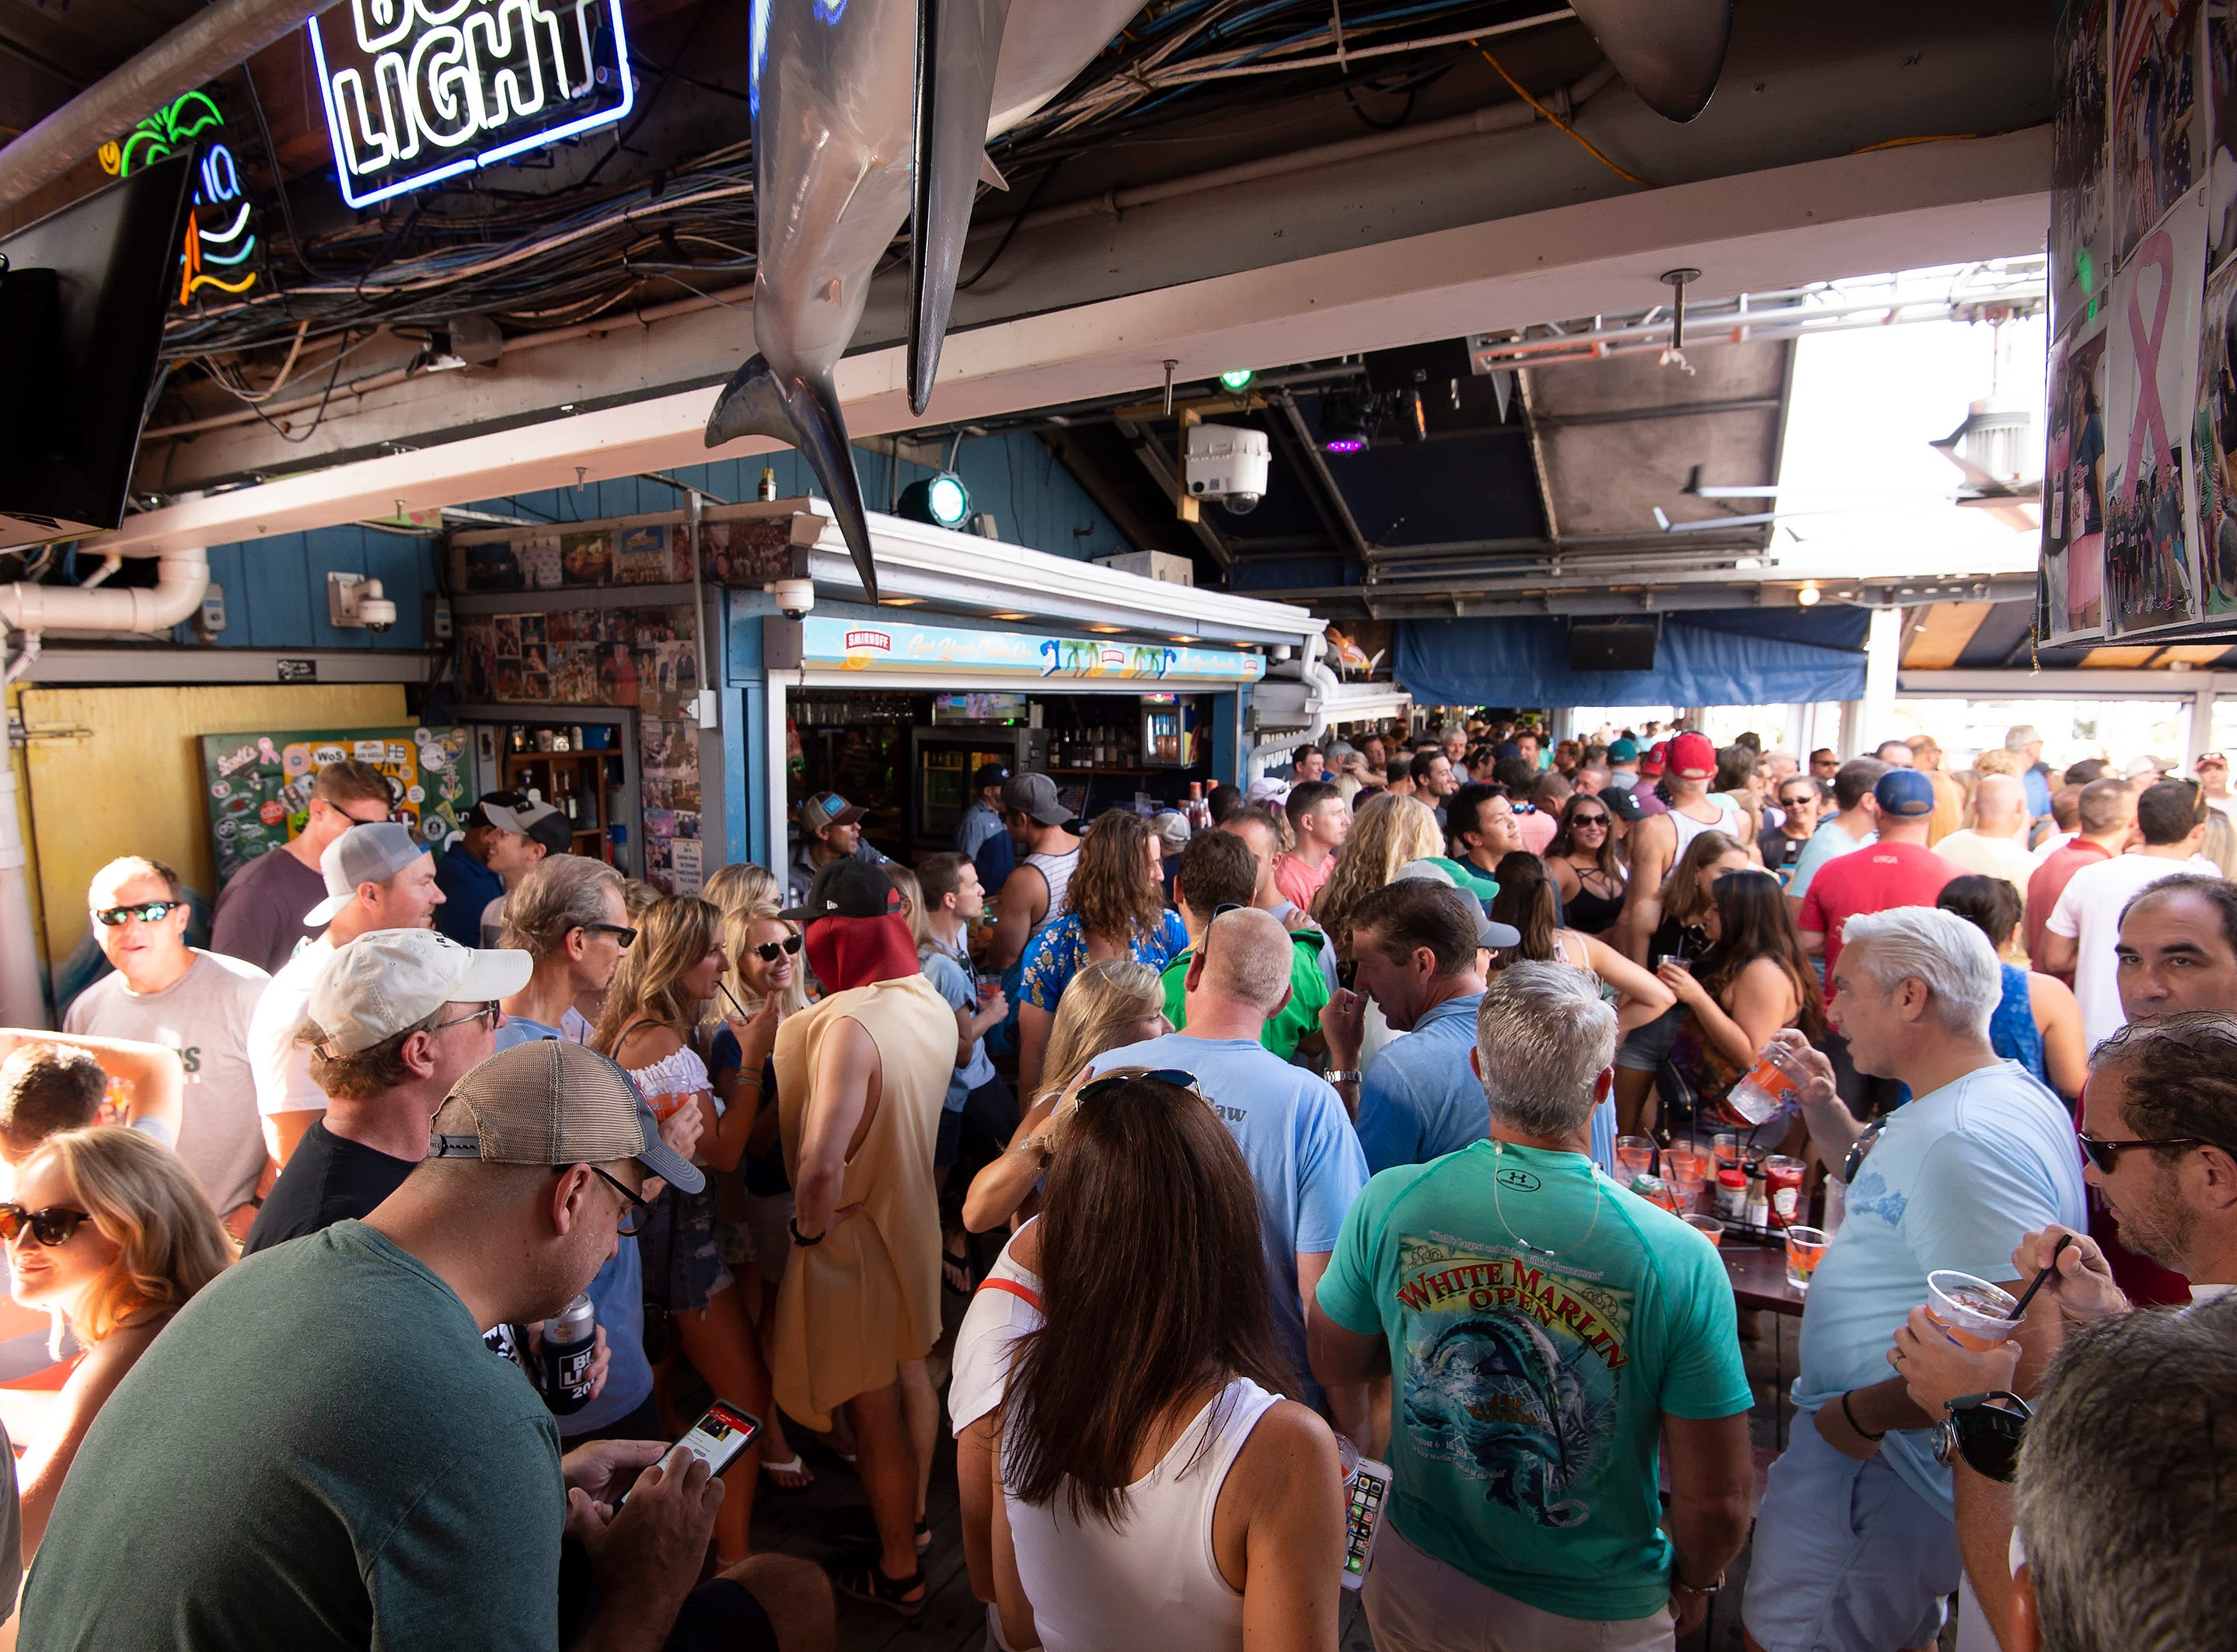 Labor day crowd at the Starboard in Dewey Beach.